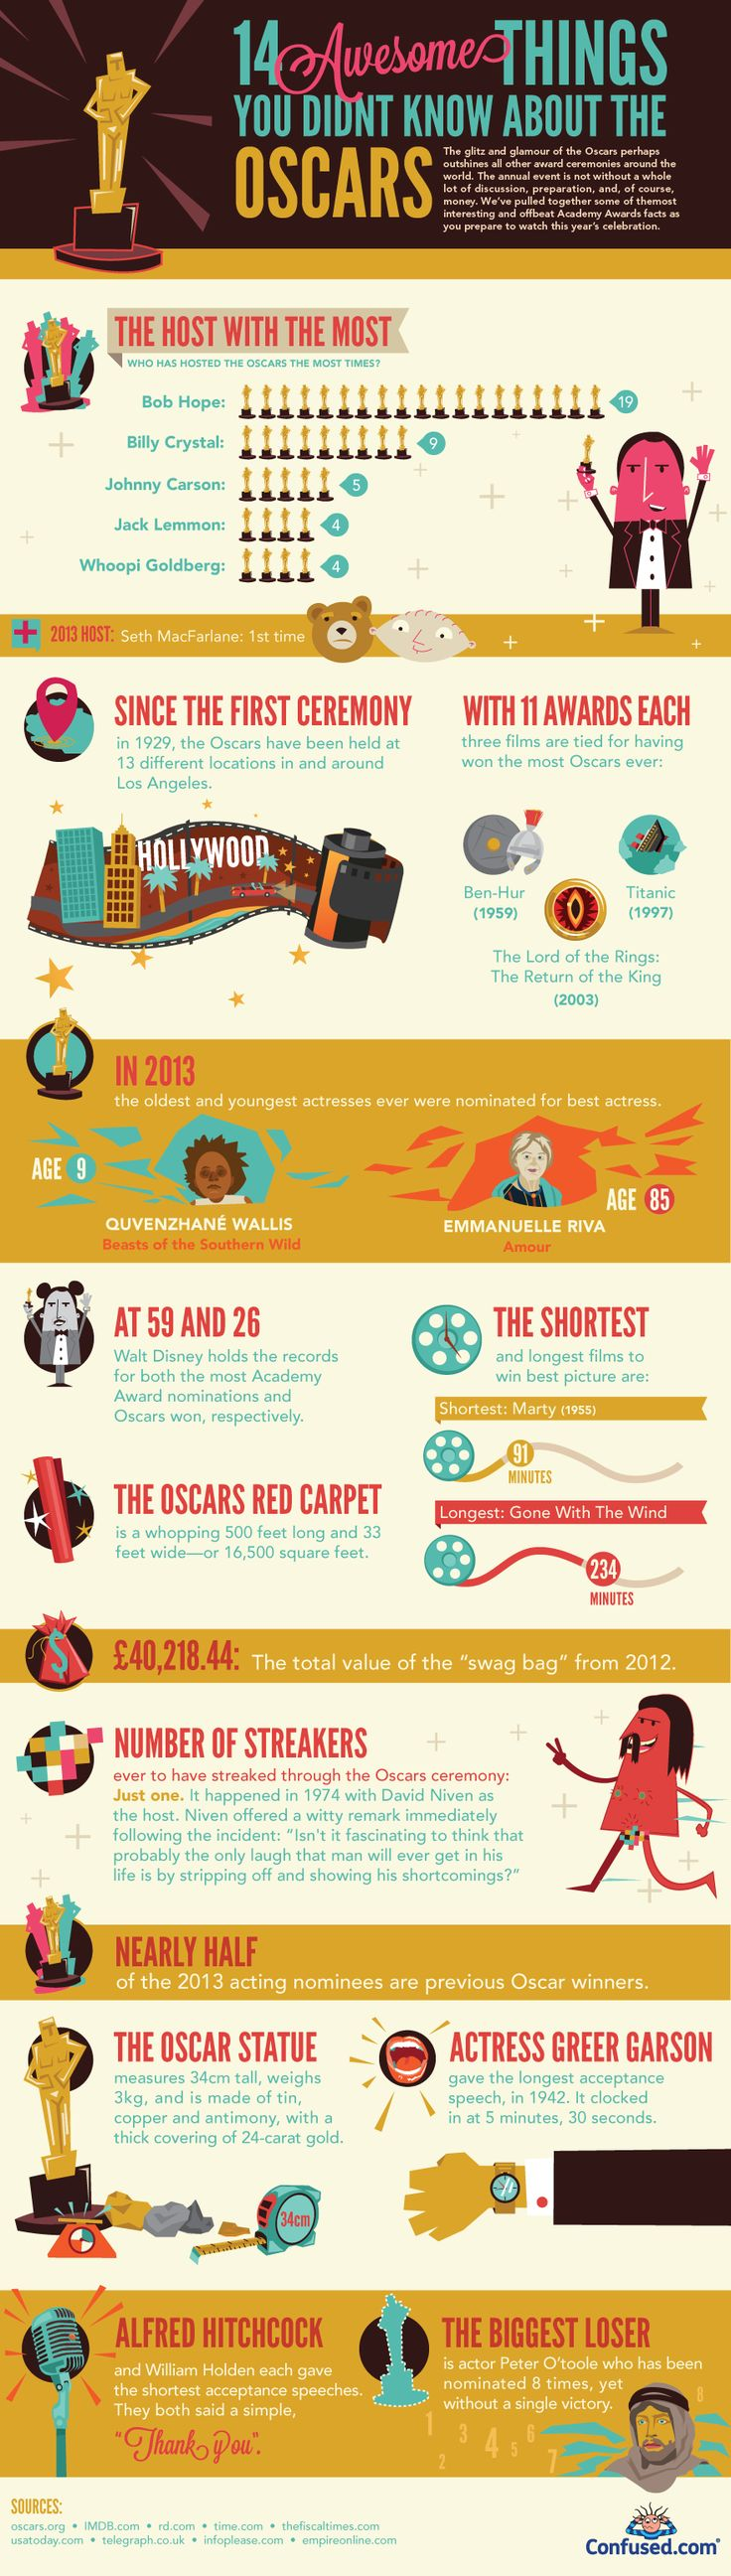 The Oscars comes around once a year in a cloud of glitz and glamour befitting of some of the worlds biggest stars. We take a look at some awesome thin